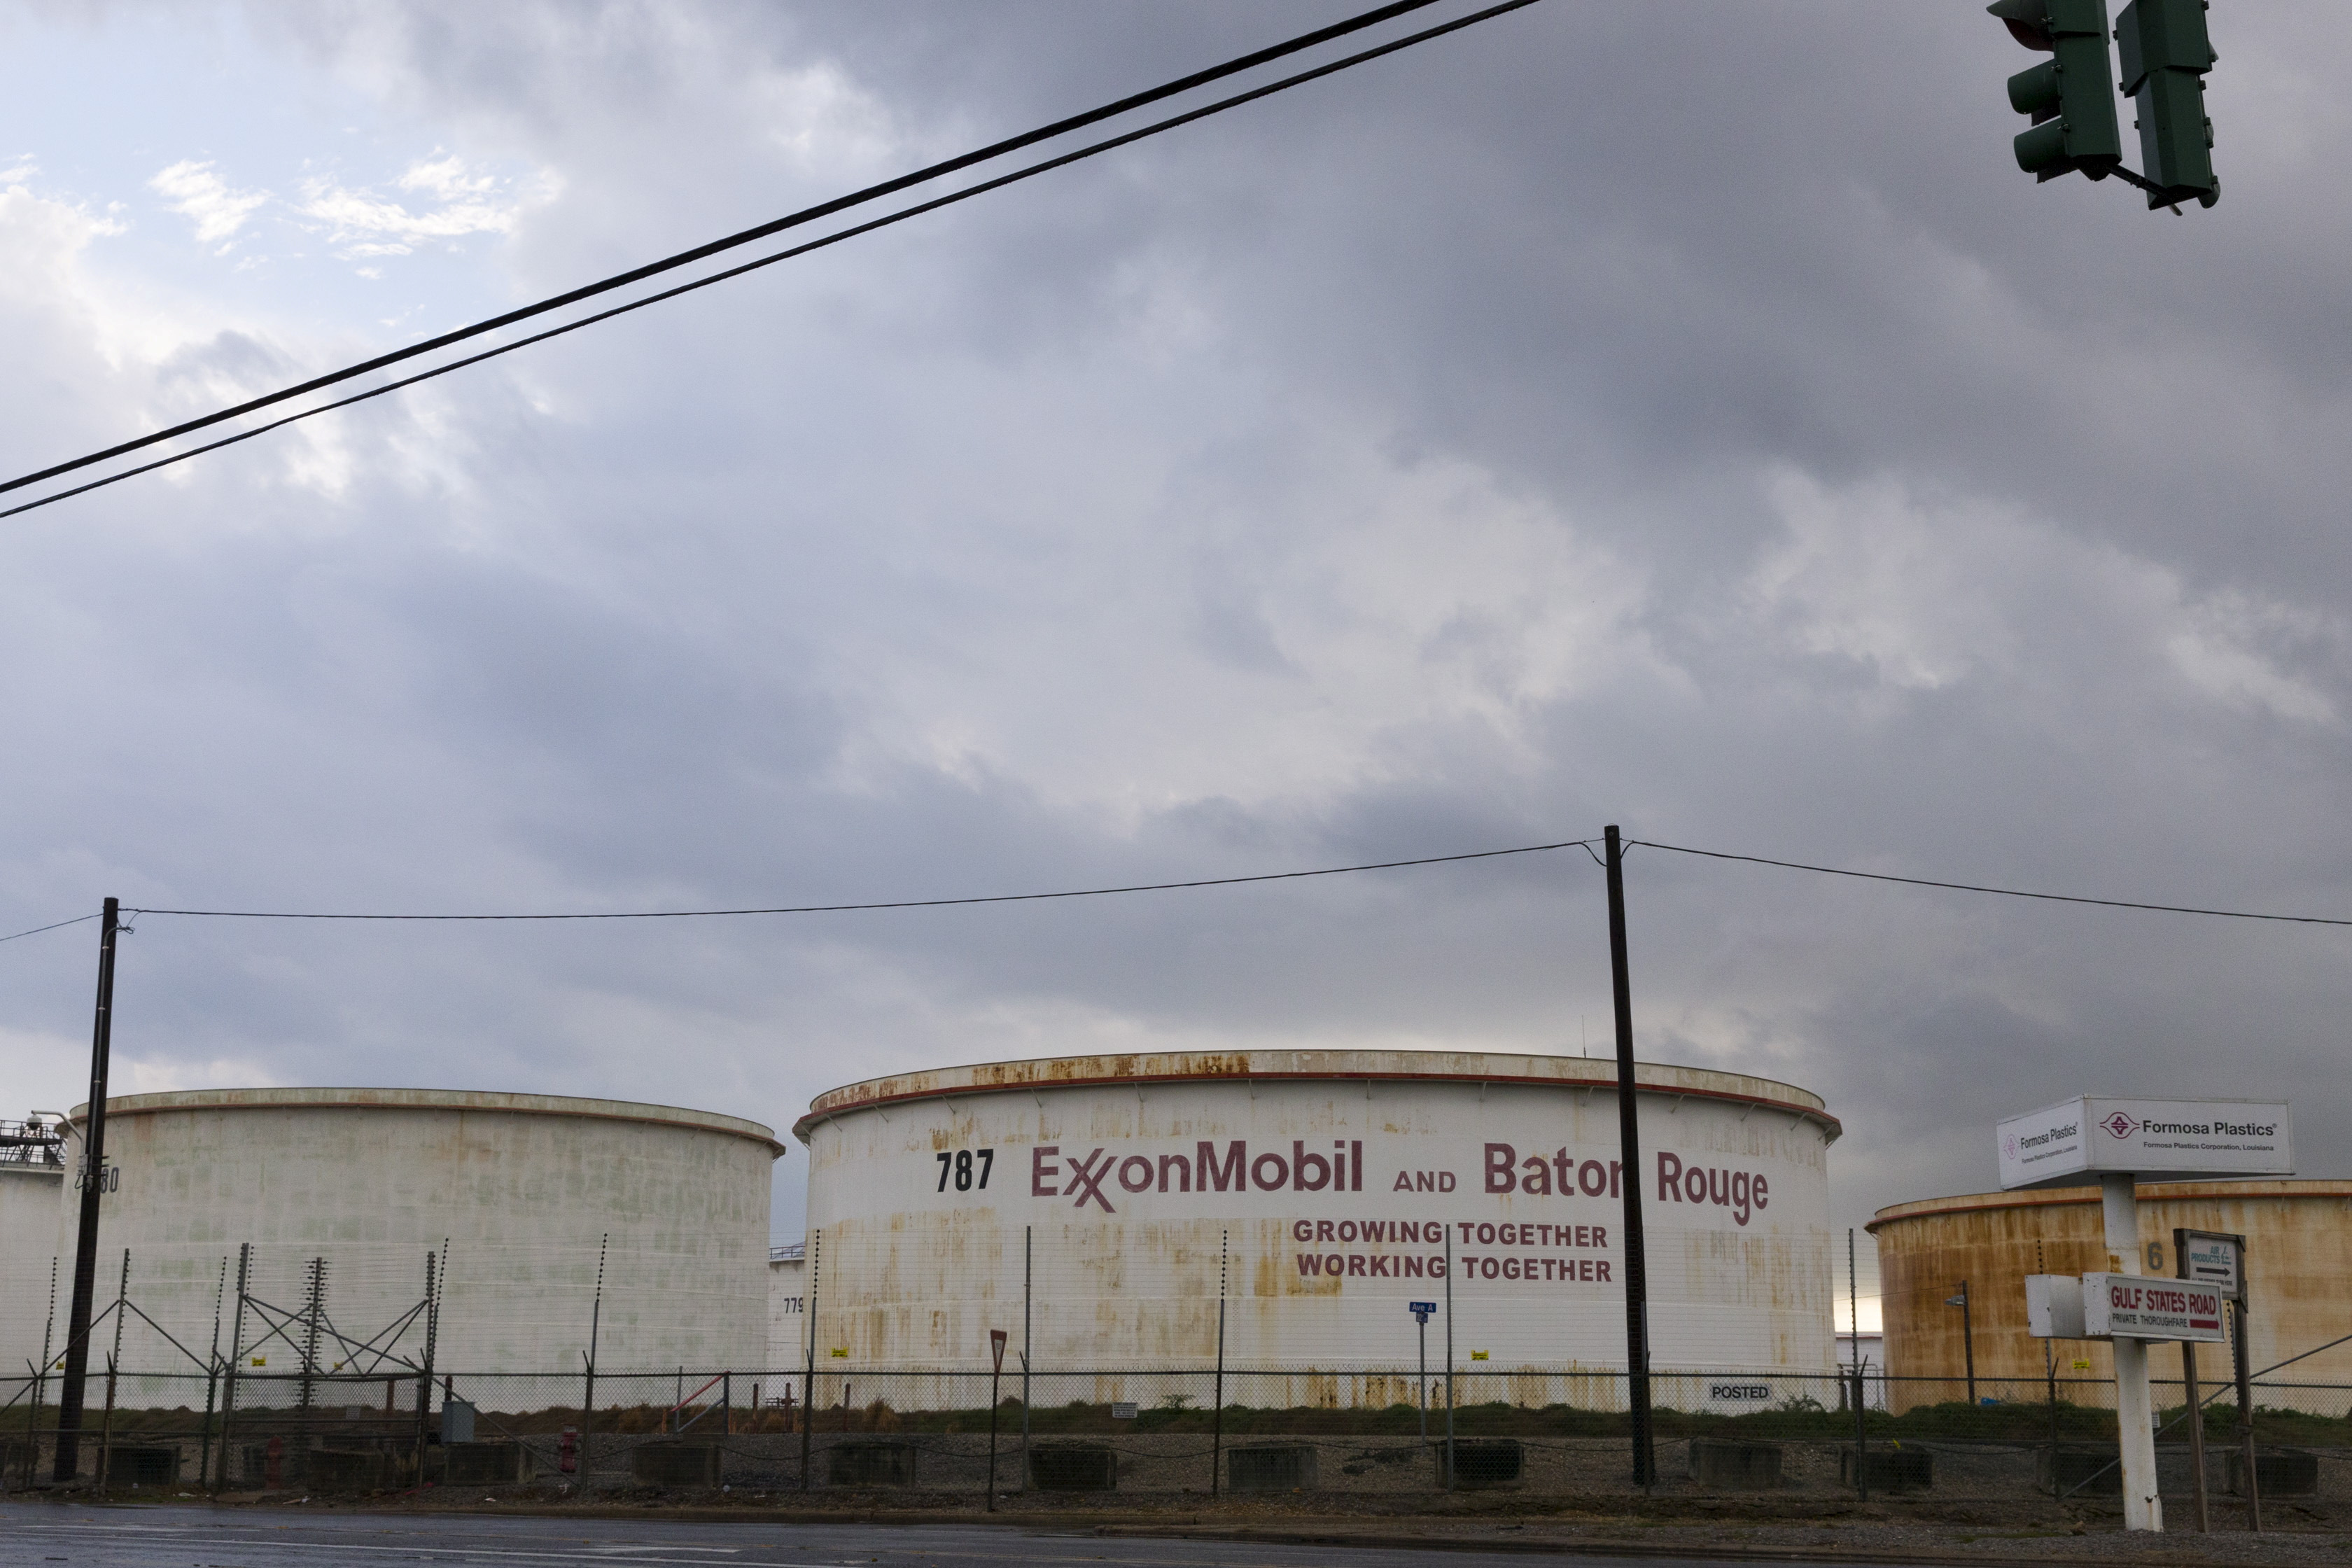 FILE PHOTO: Storage tanks are seen inside the Exxonmobil Baton Rouge Refinery in Baton Rouge